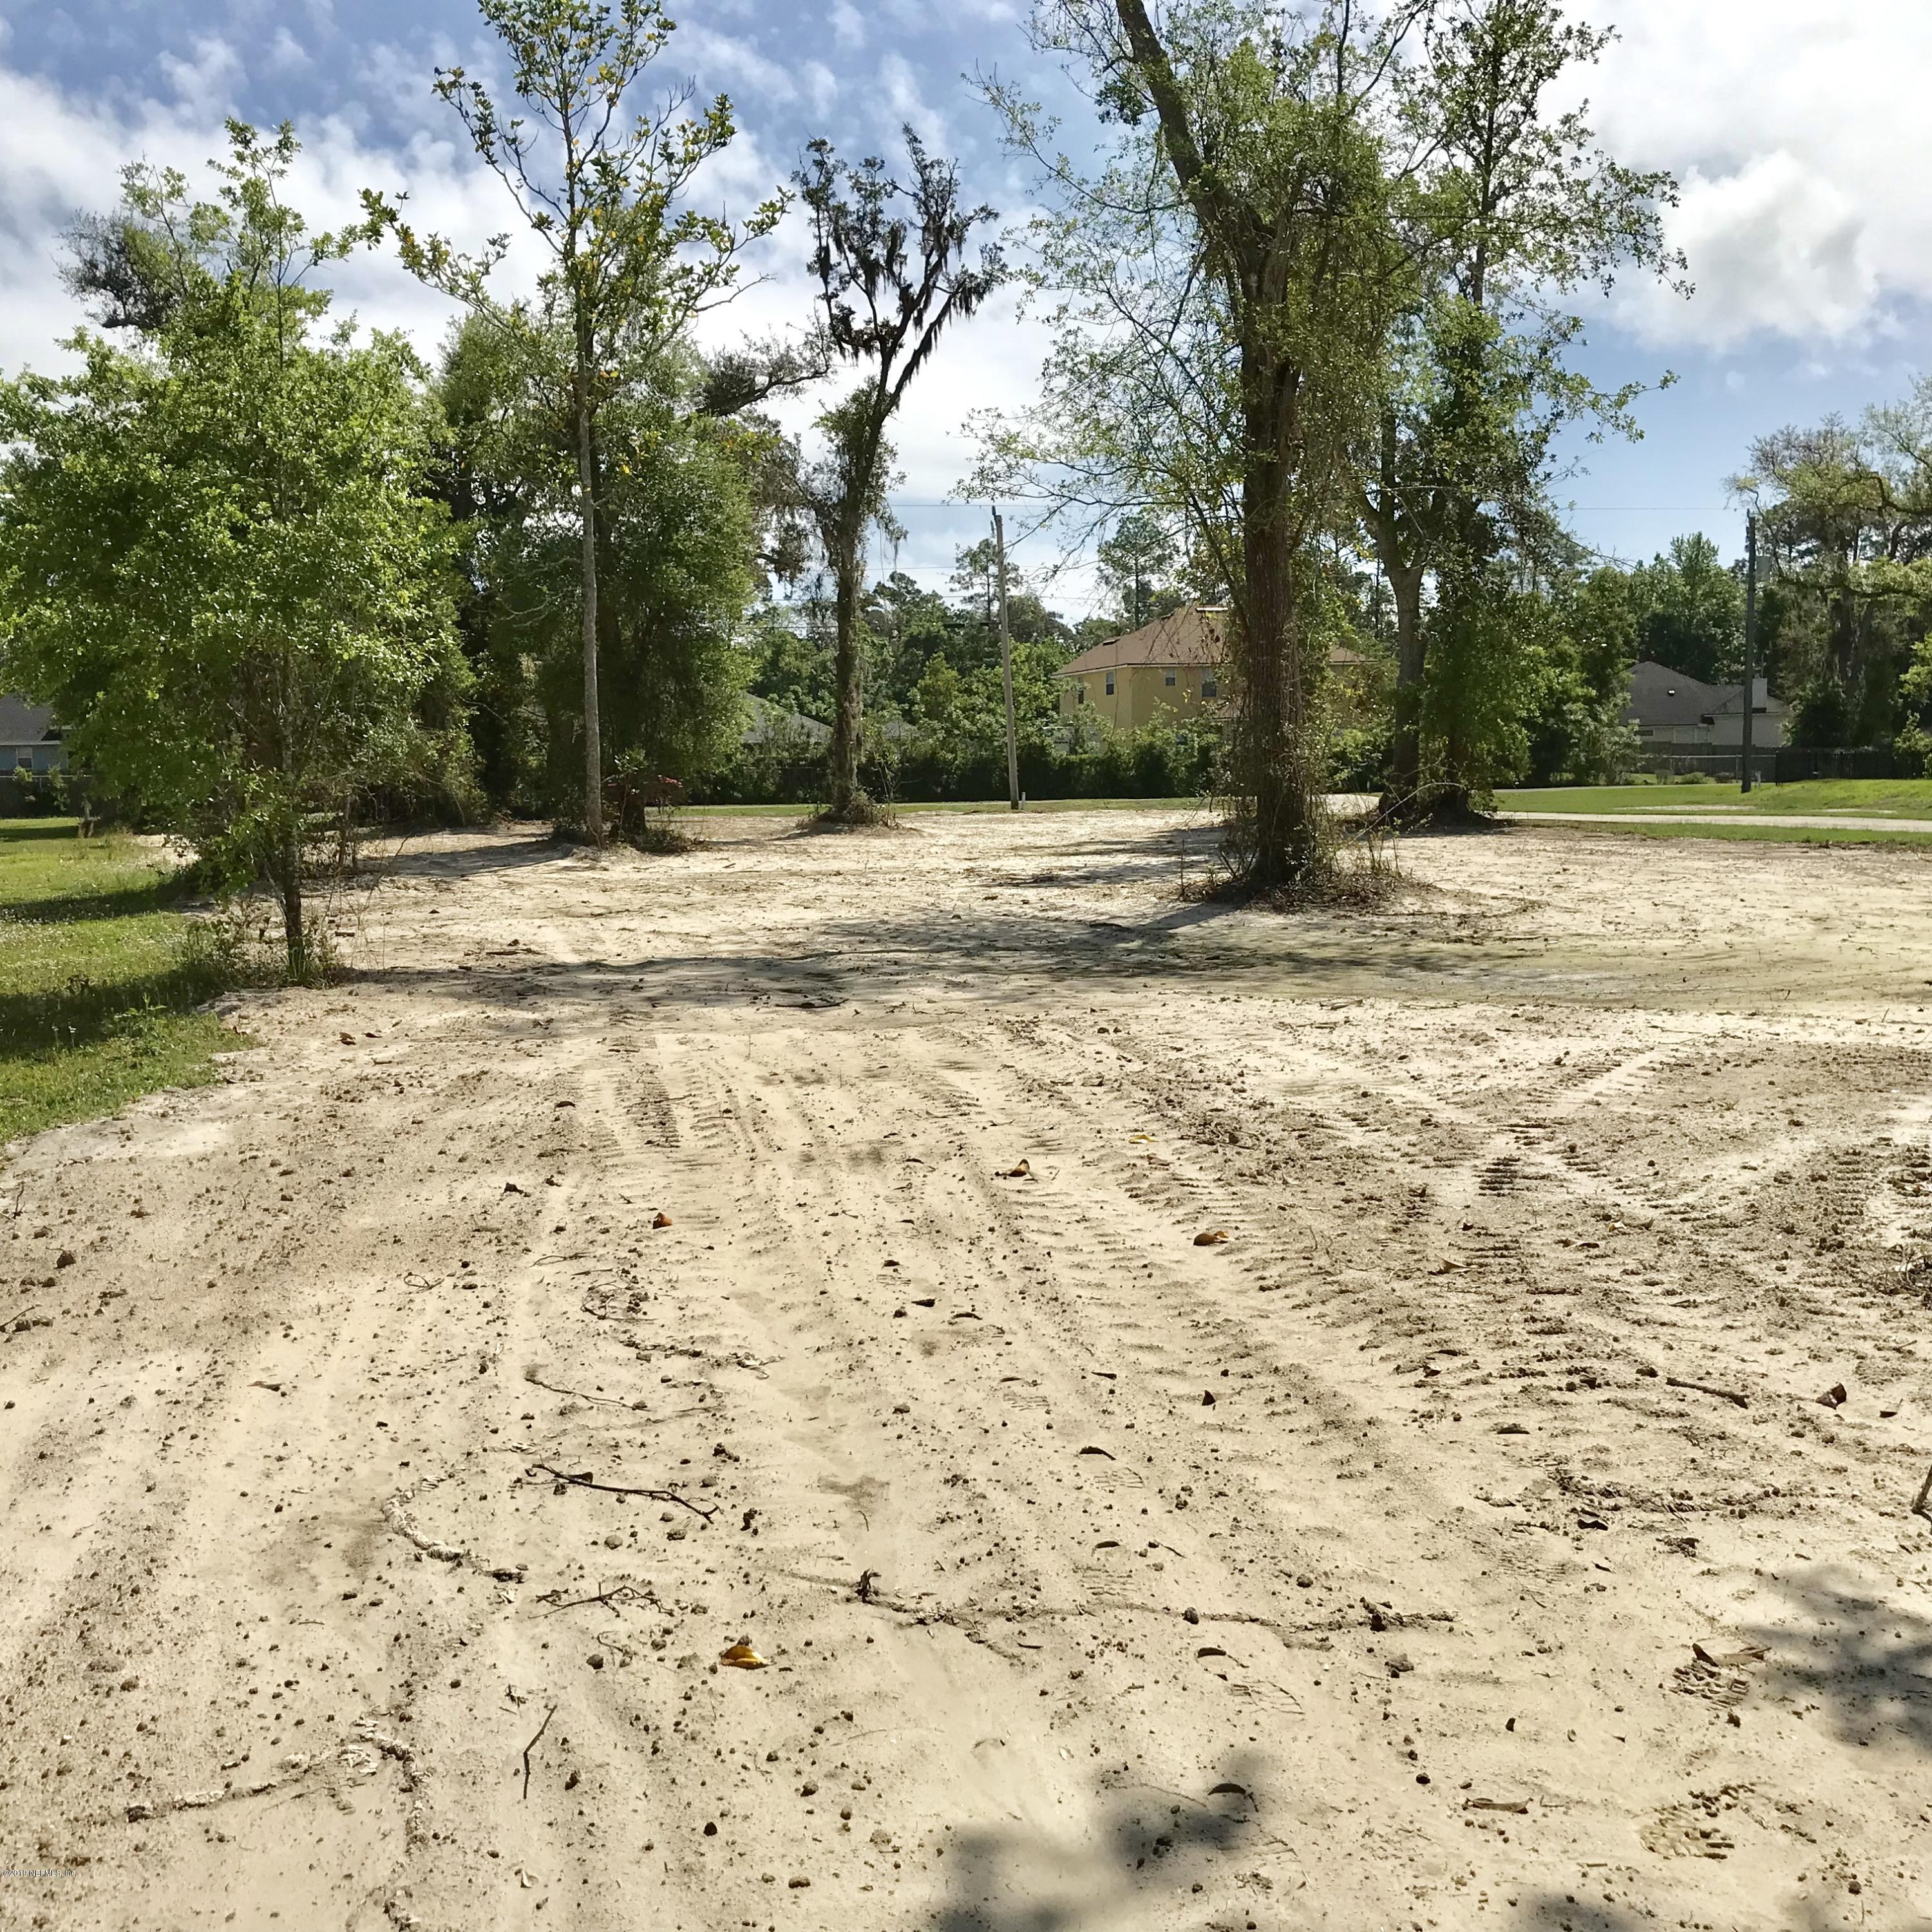 0 MEADOWFIELD BLUFFS, YULEE, FLORIDA 32097, ,Vacant land,For sale,MEADOWFIELD BLUFFS,934085